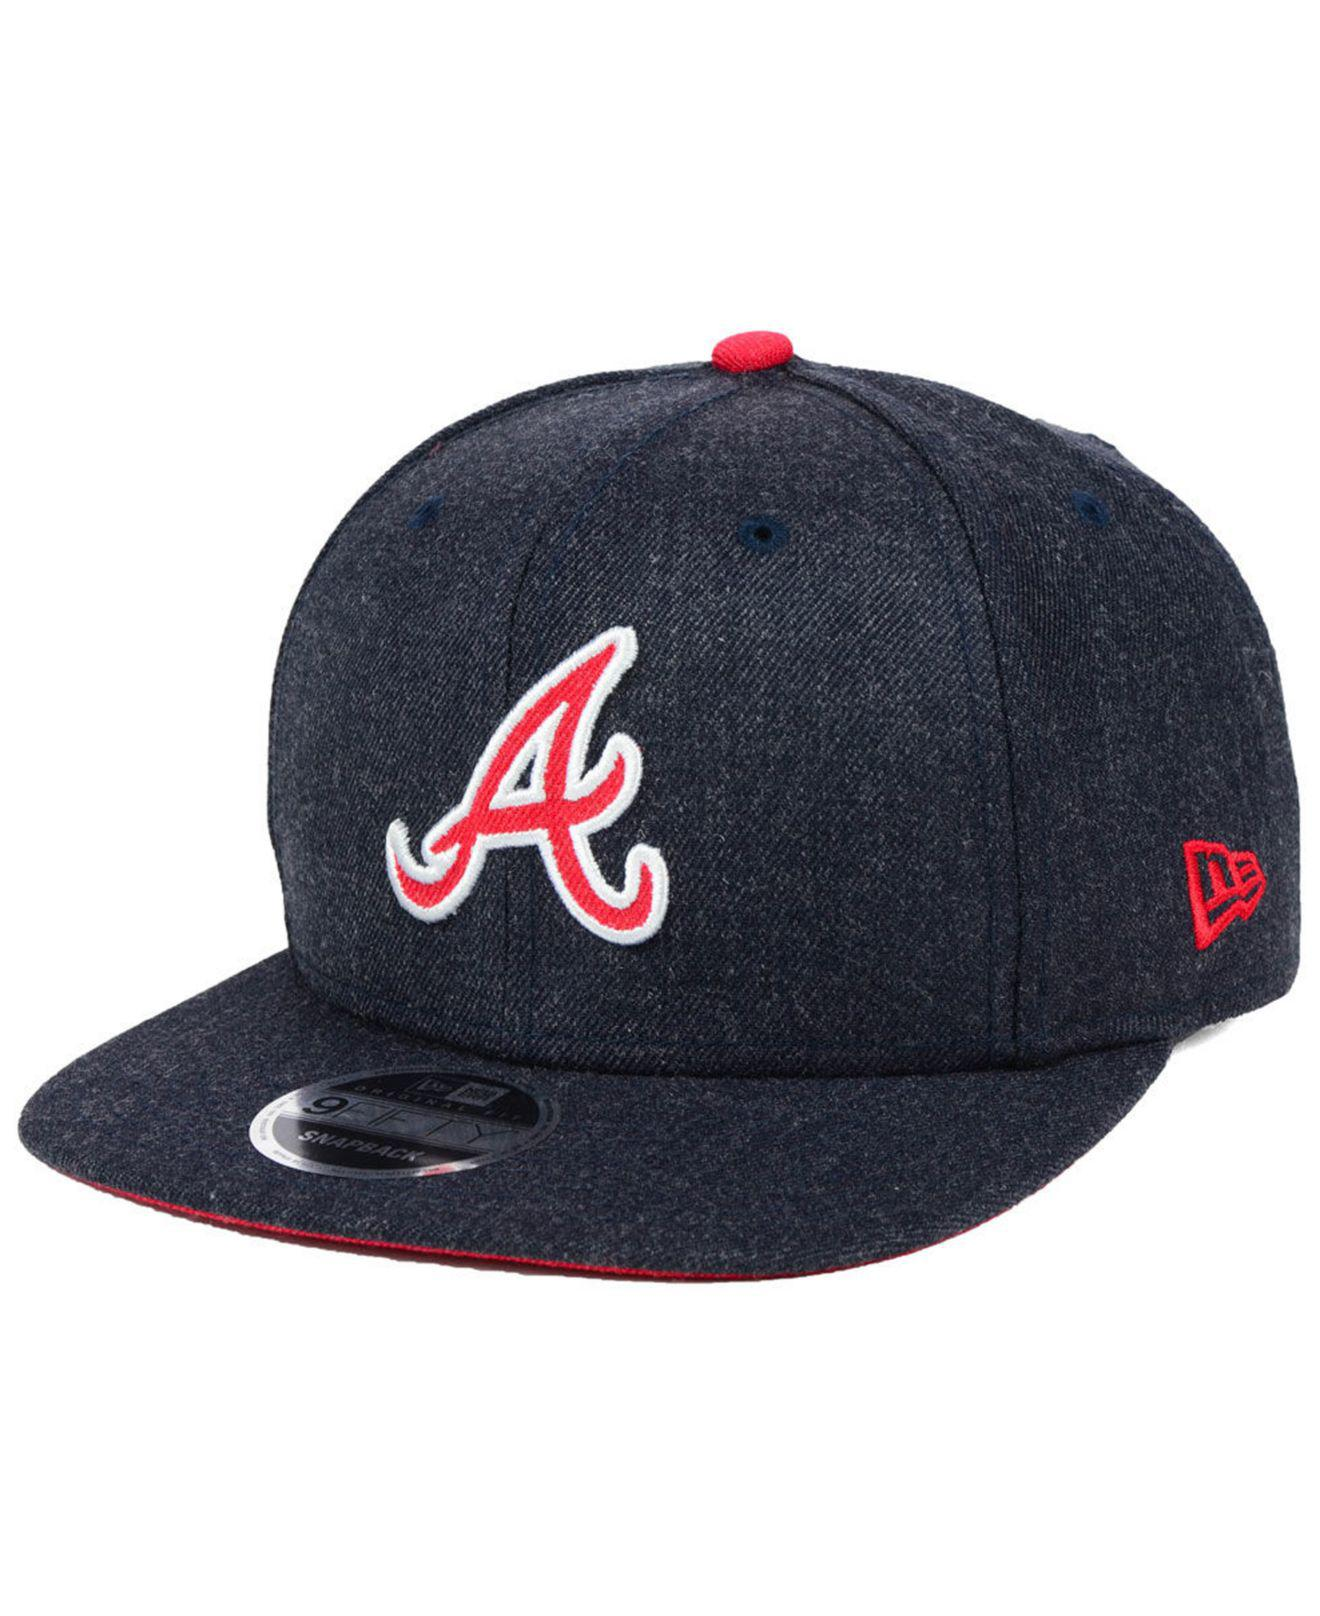 closer at buy popular great deals KTZ Synthetic Atlanta Braves Heather Hype 9fifty Snapback Cap in ...